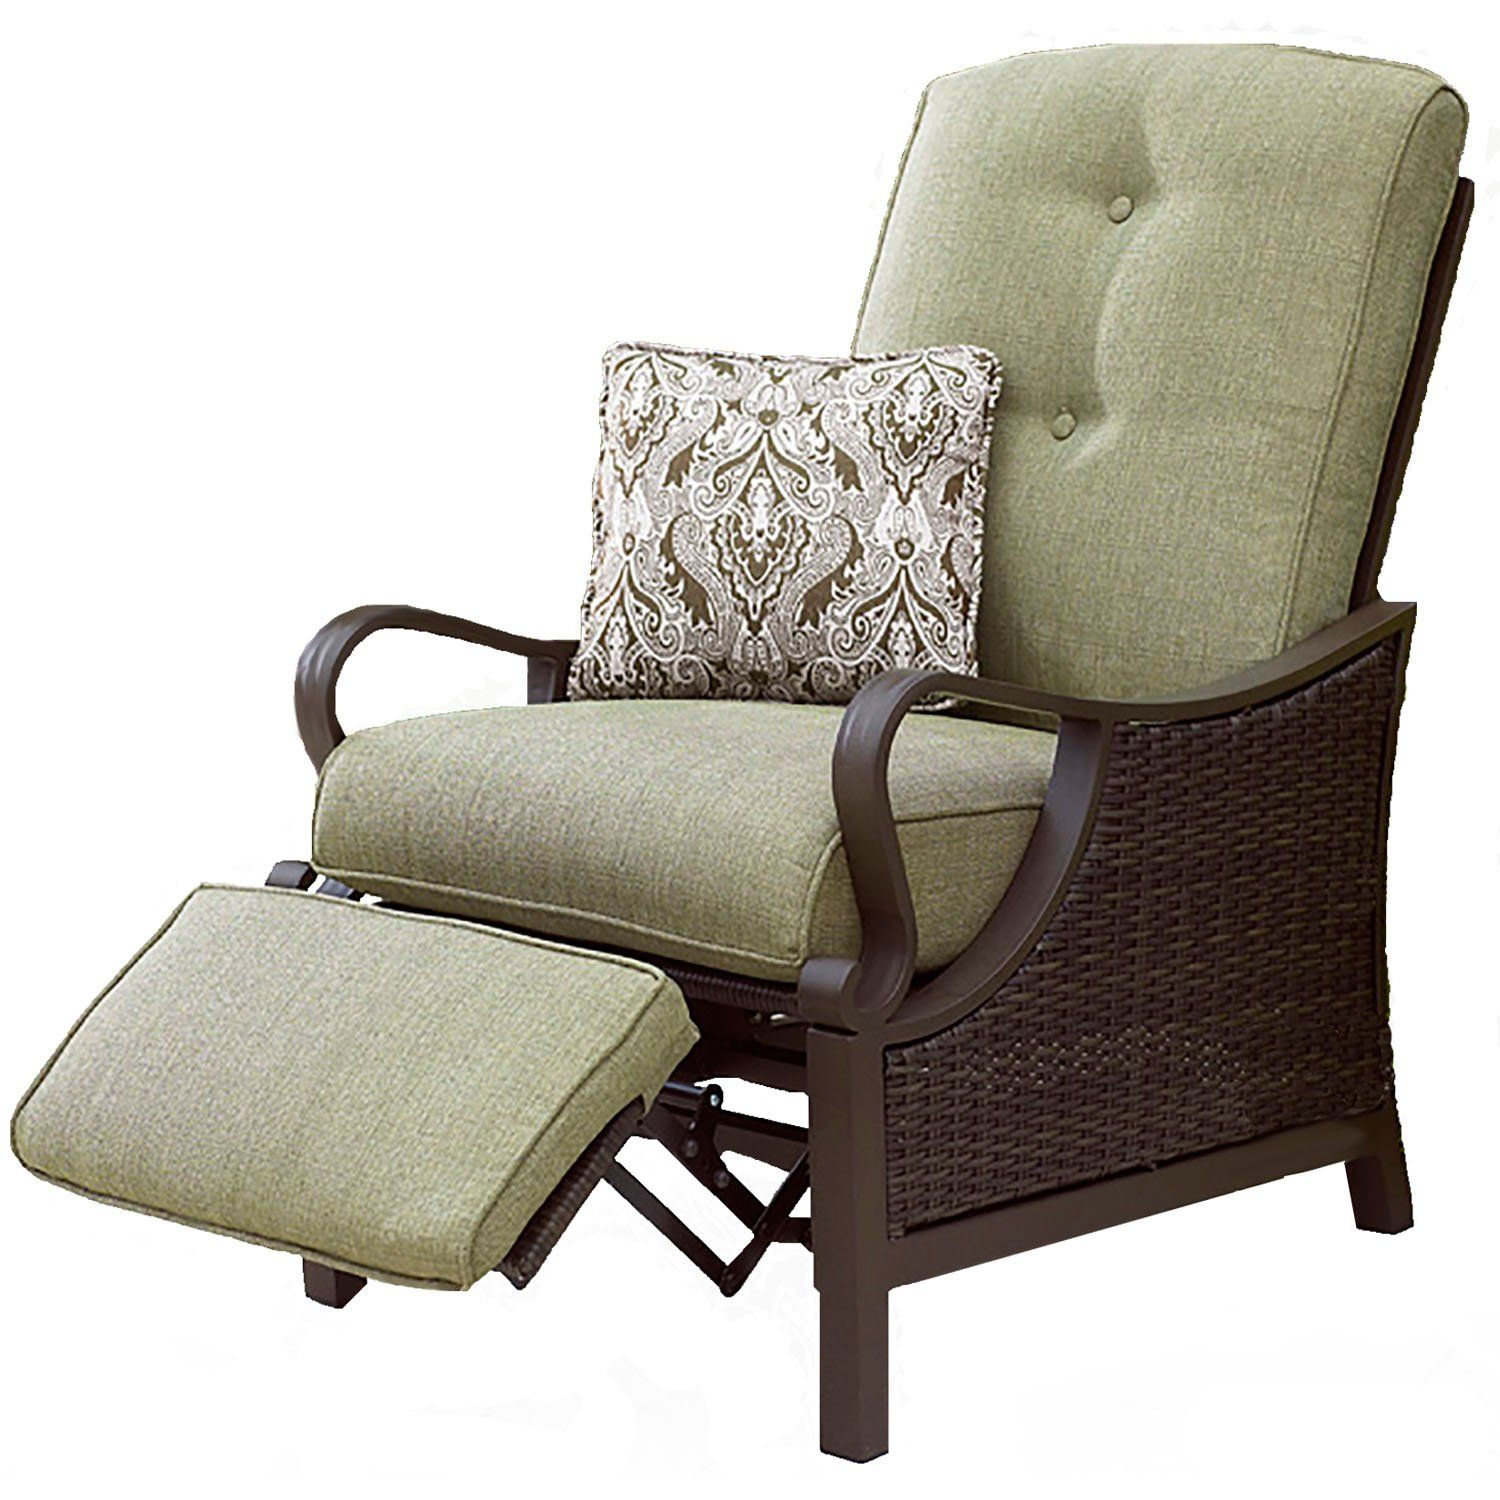 amazon com hanover venturarec ventura indoor outdoor recliner with